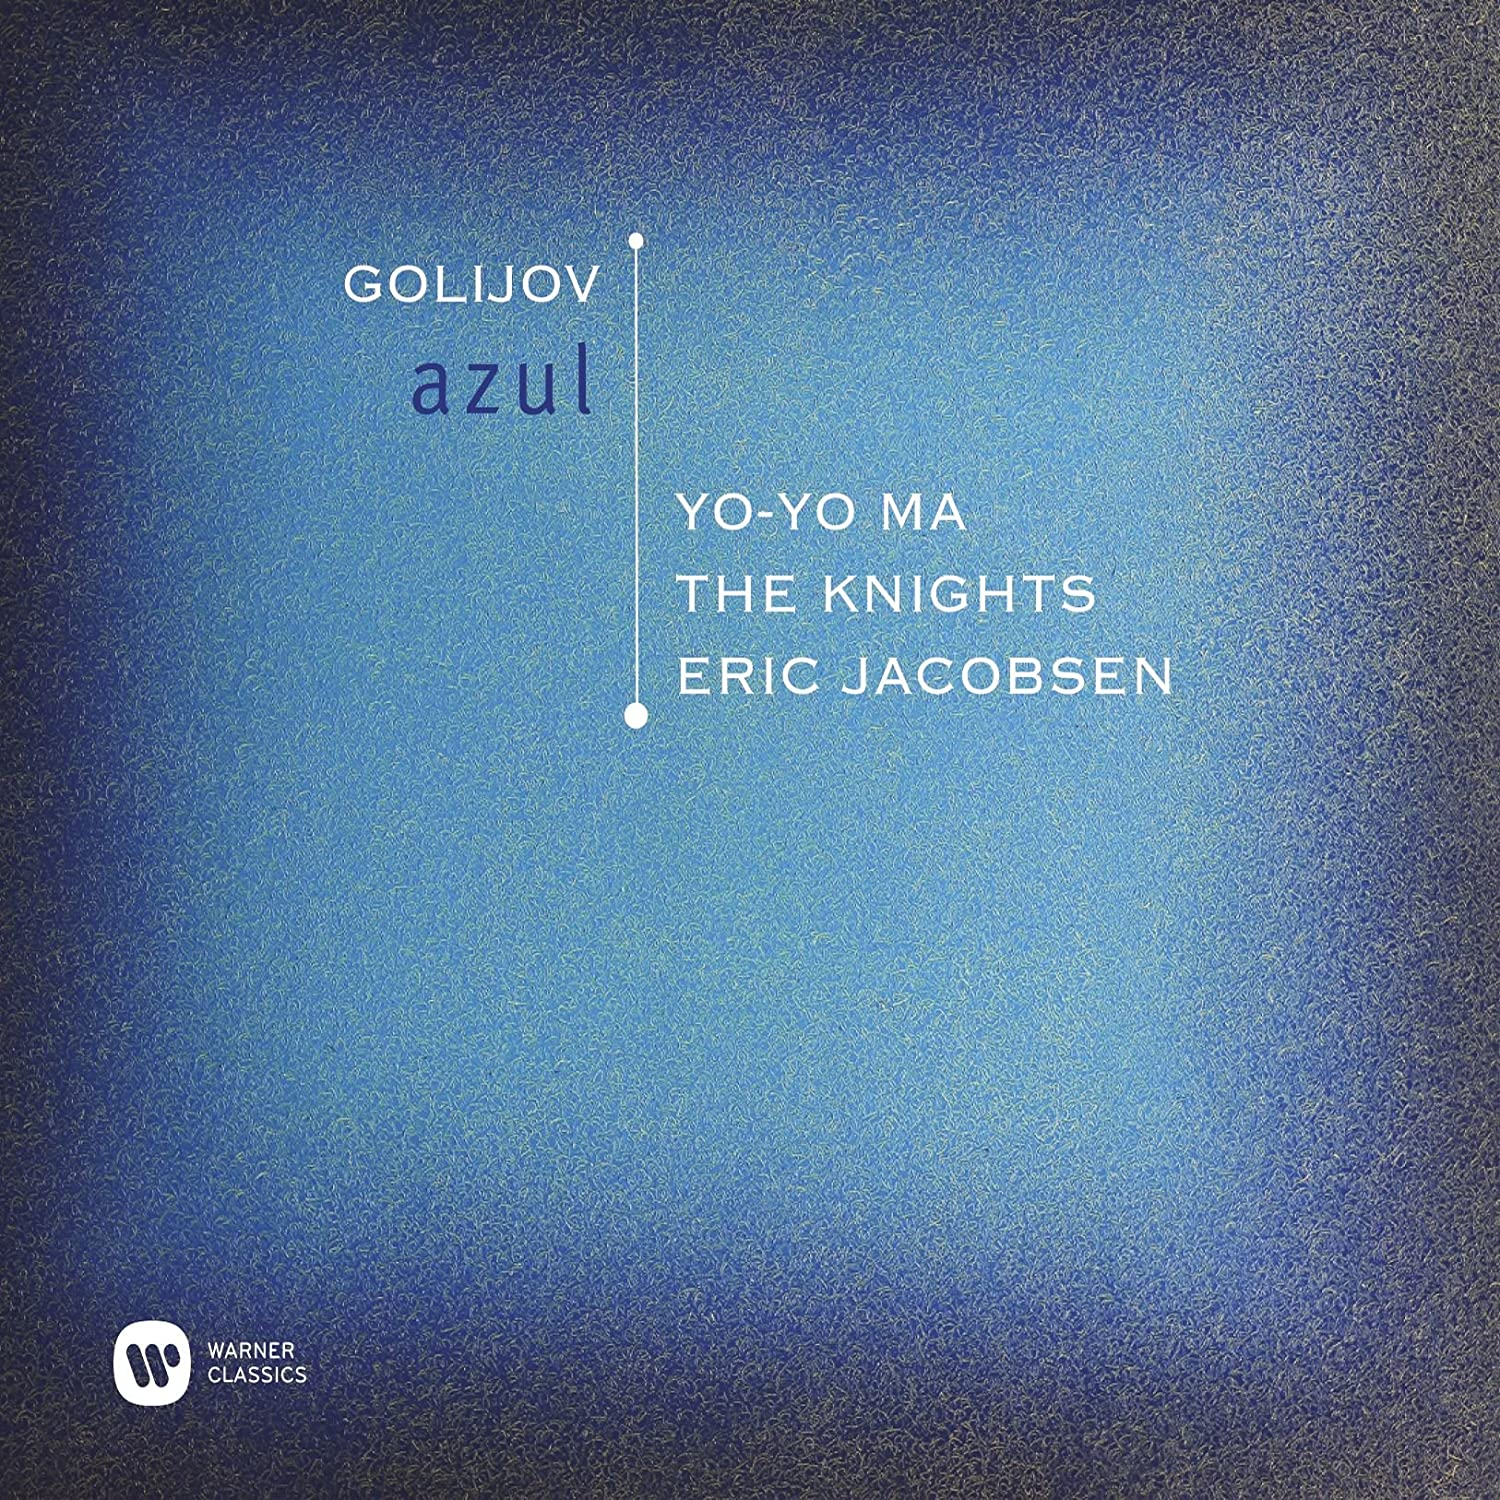 The Knights - Golijov: Azul; Stockhausen: Tierkreis (arr. Caroline ...